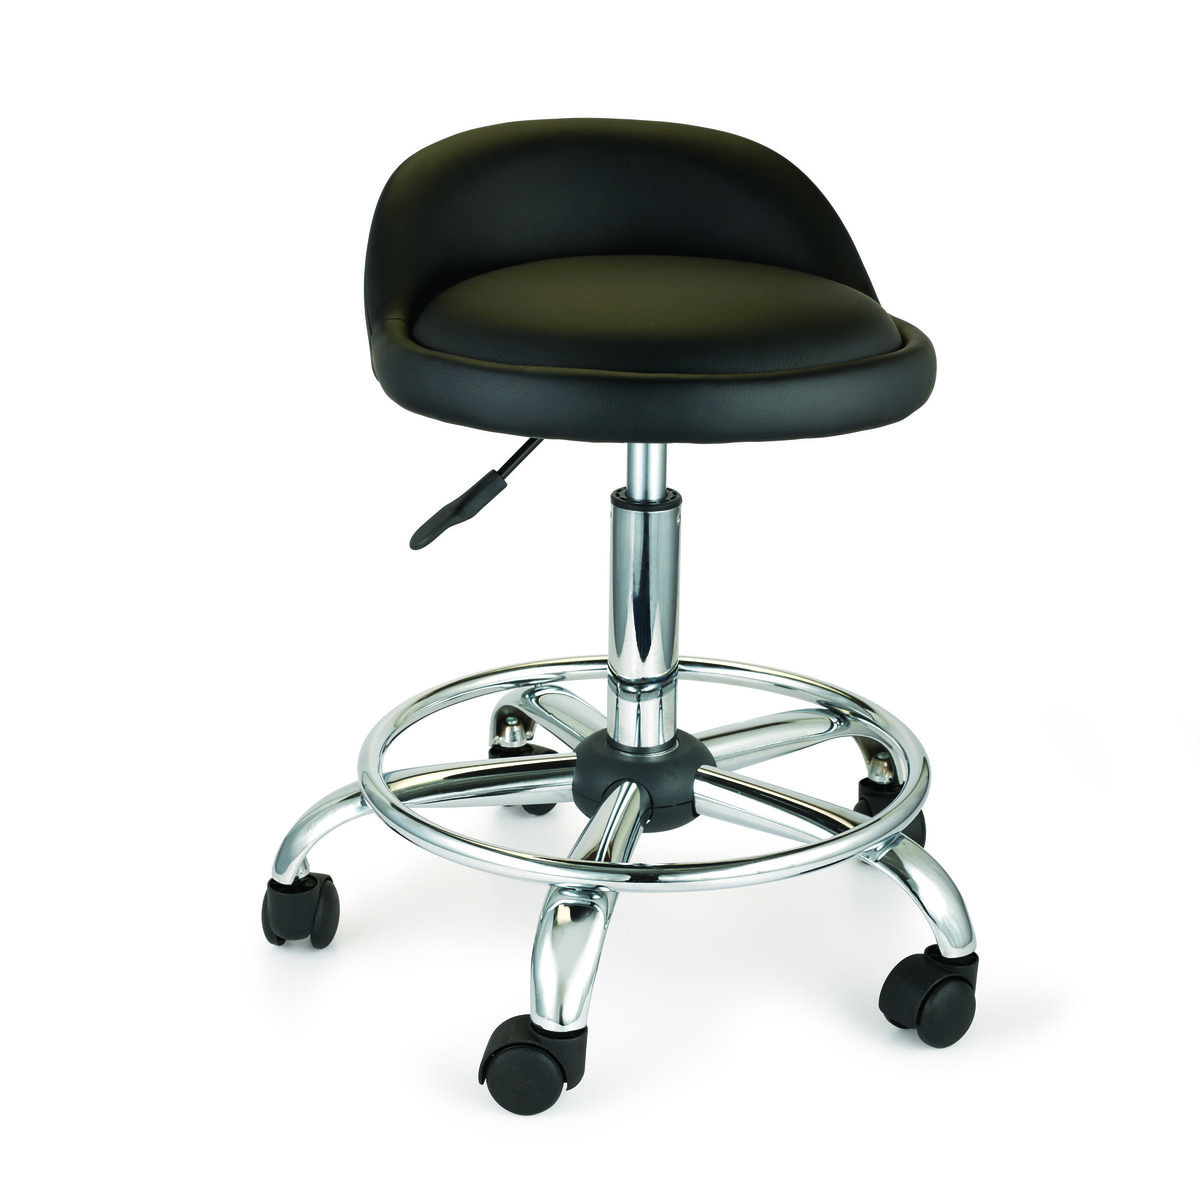 Woodriver Adjustable Height Shop Stool With Casters And Feet